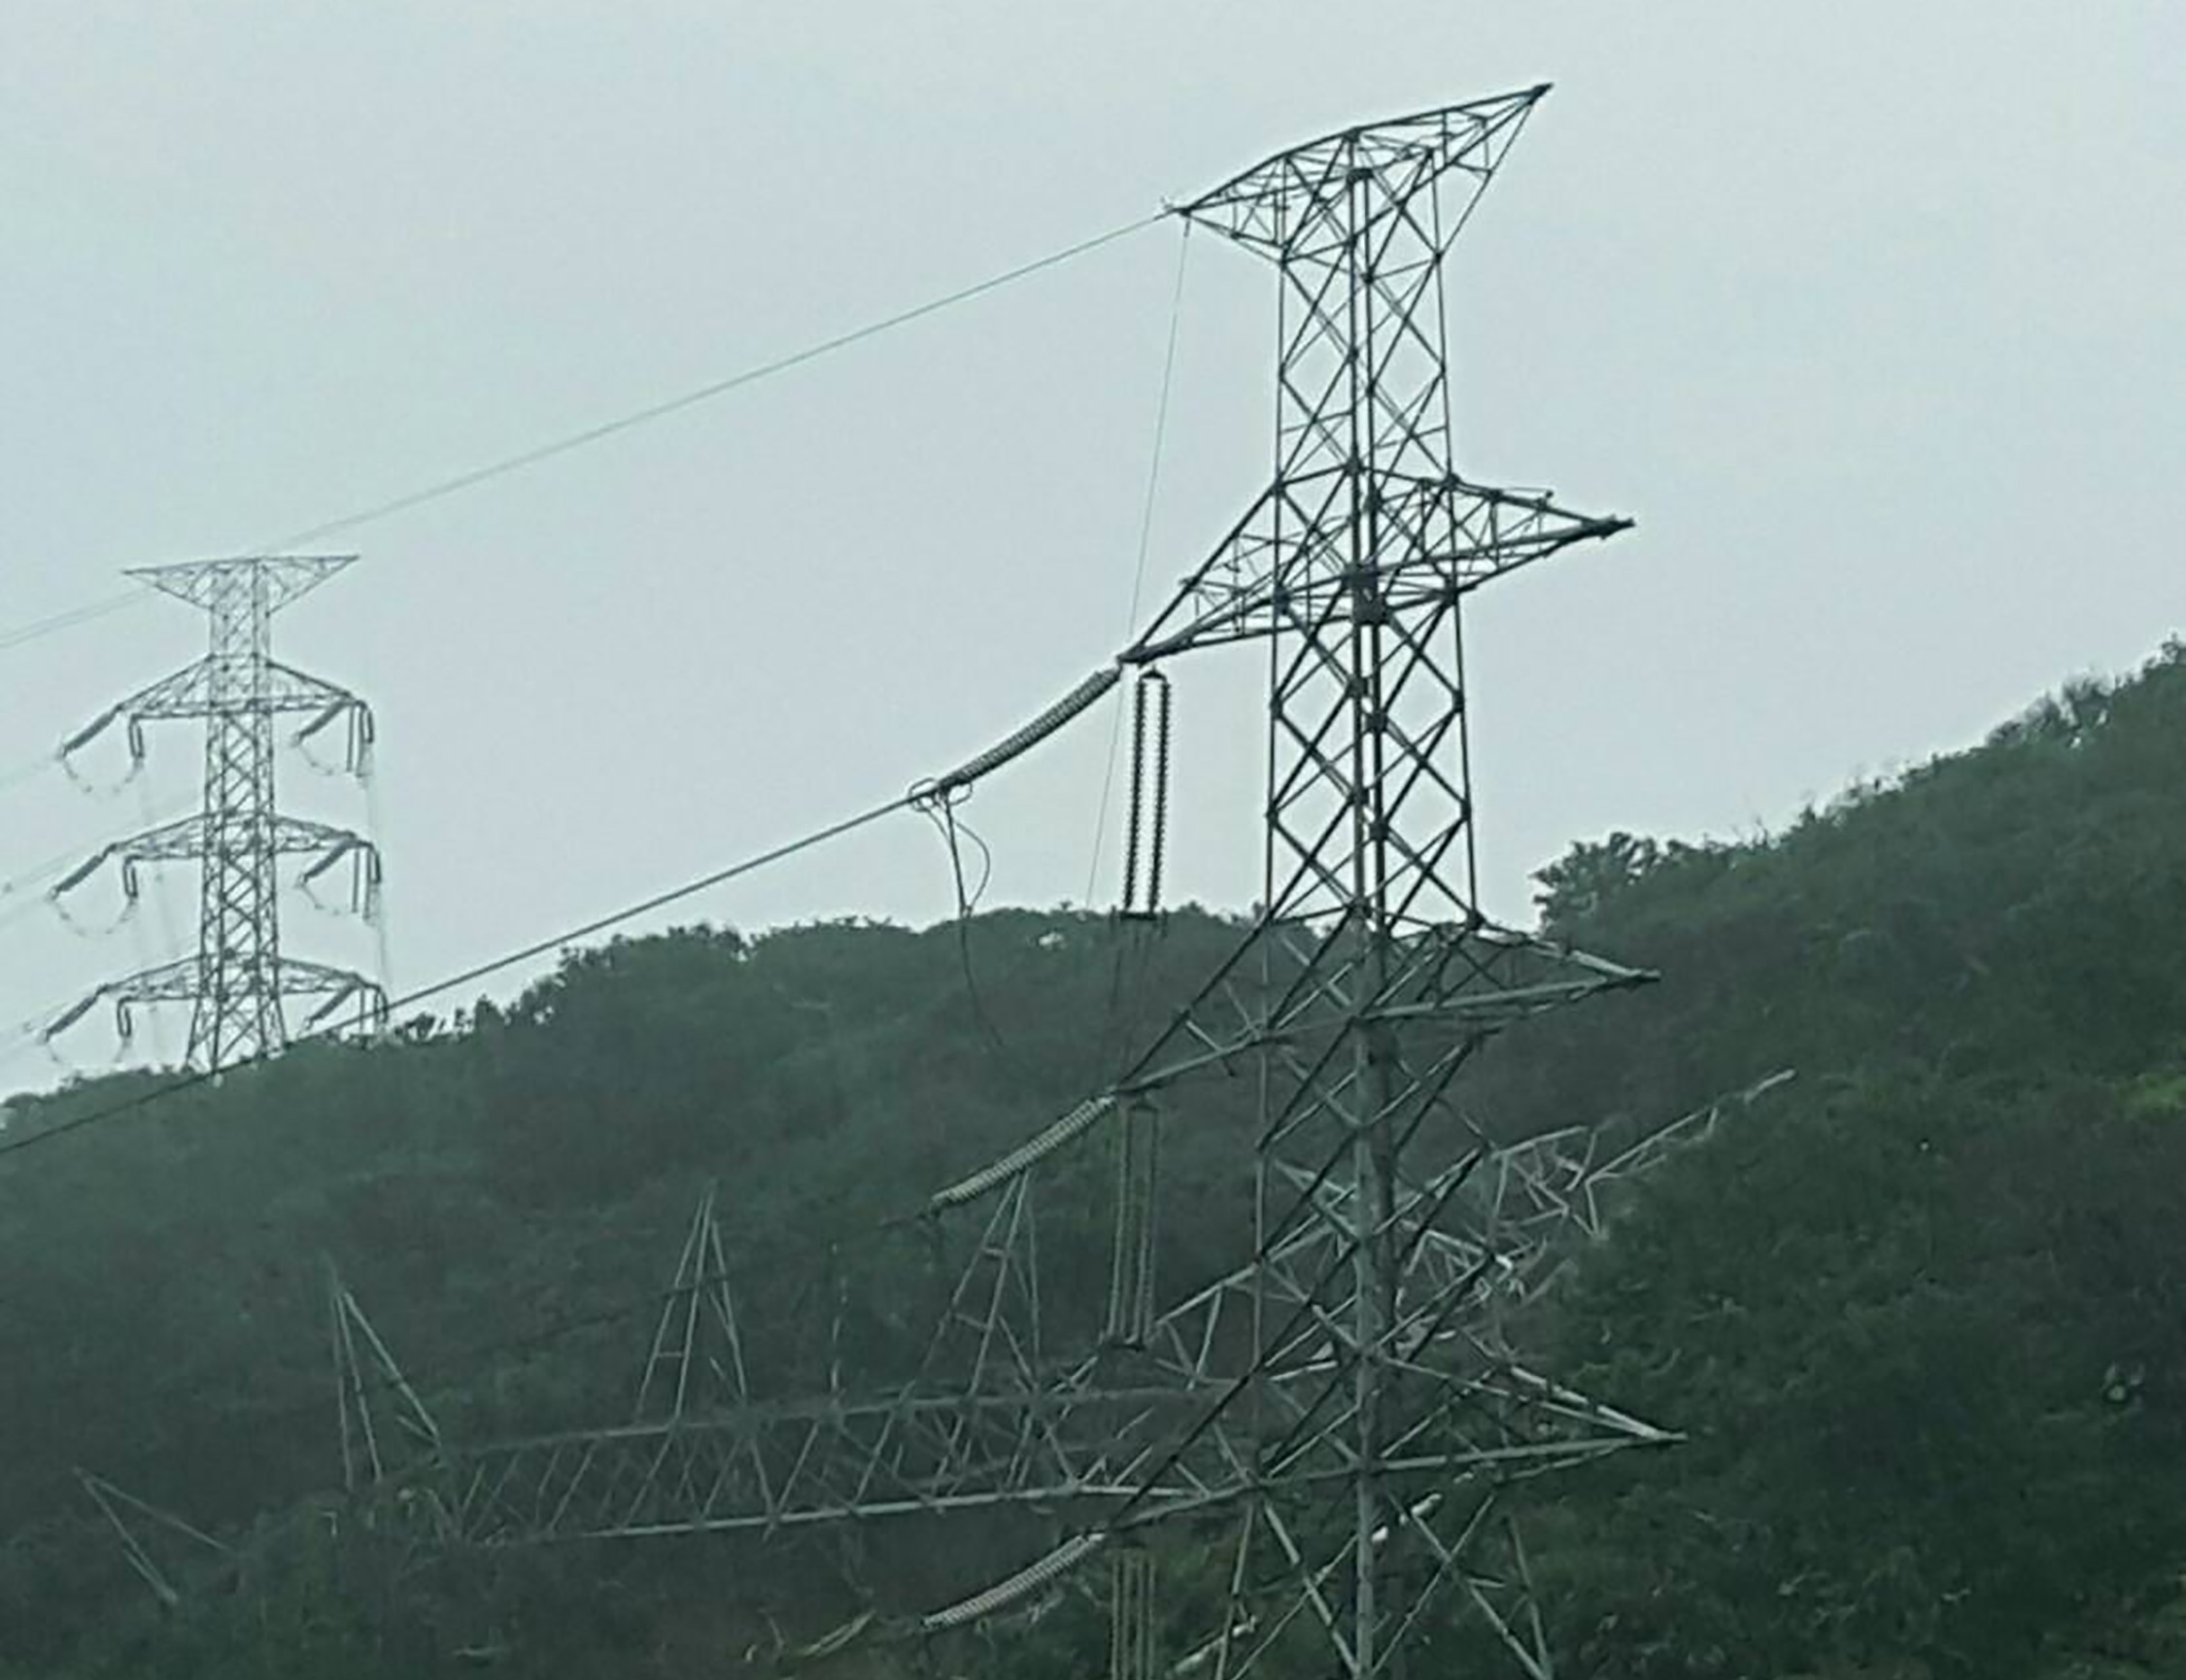 Toppled power tower strewn on hillside.